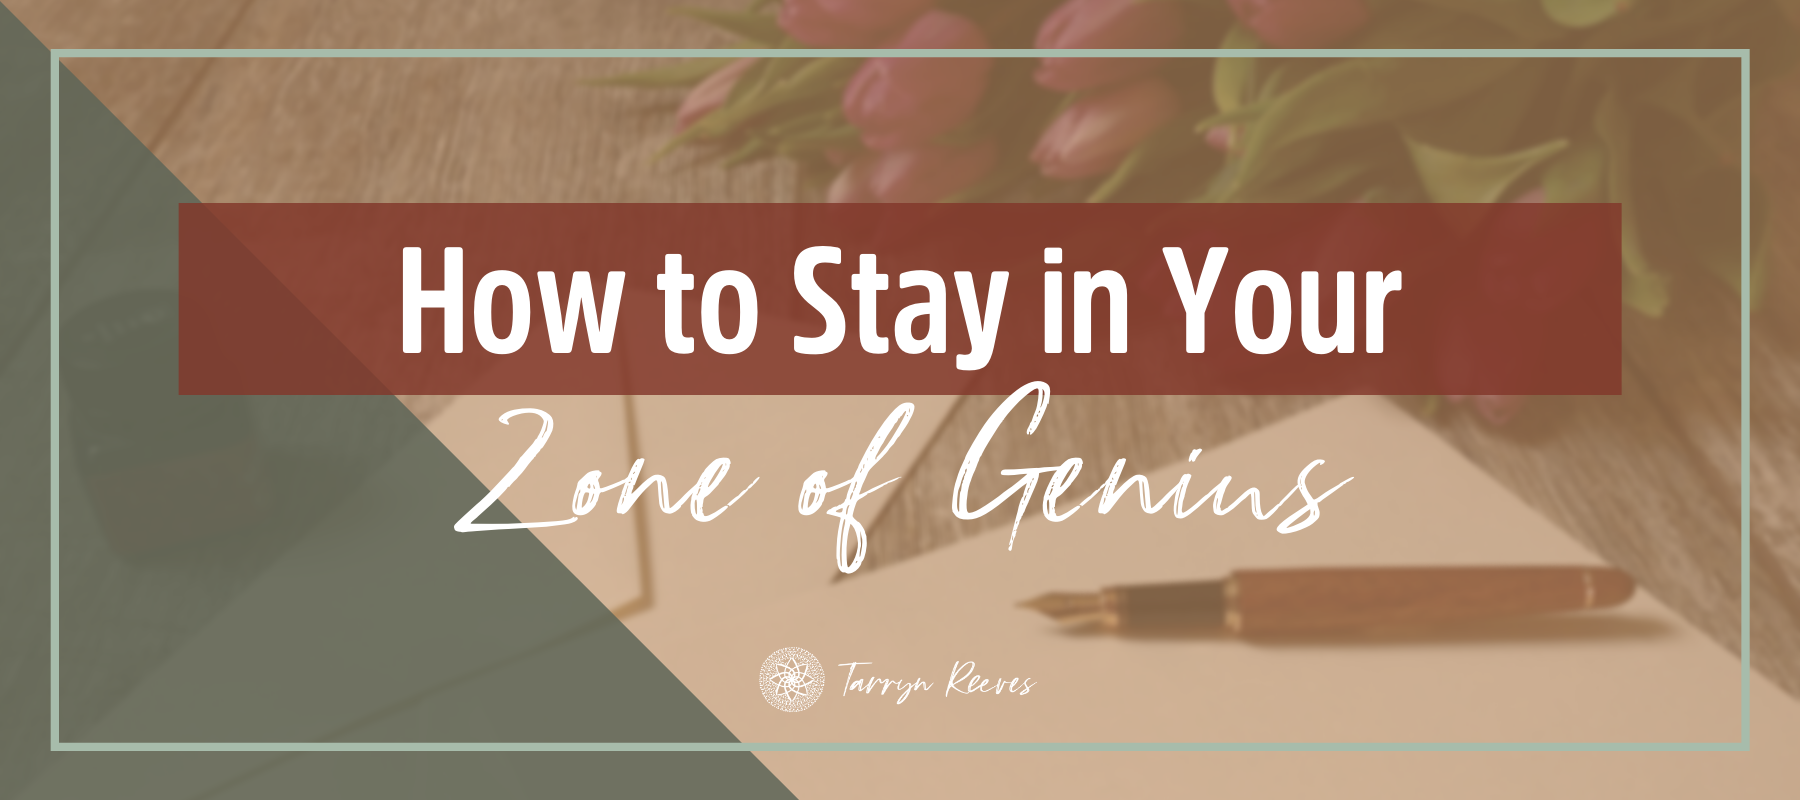 How to Stay in Your Zone of Genius (and why this matters)